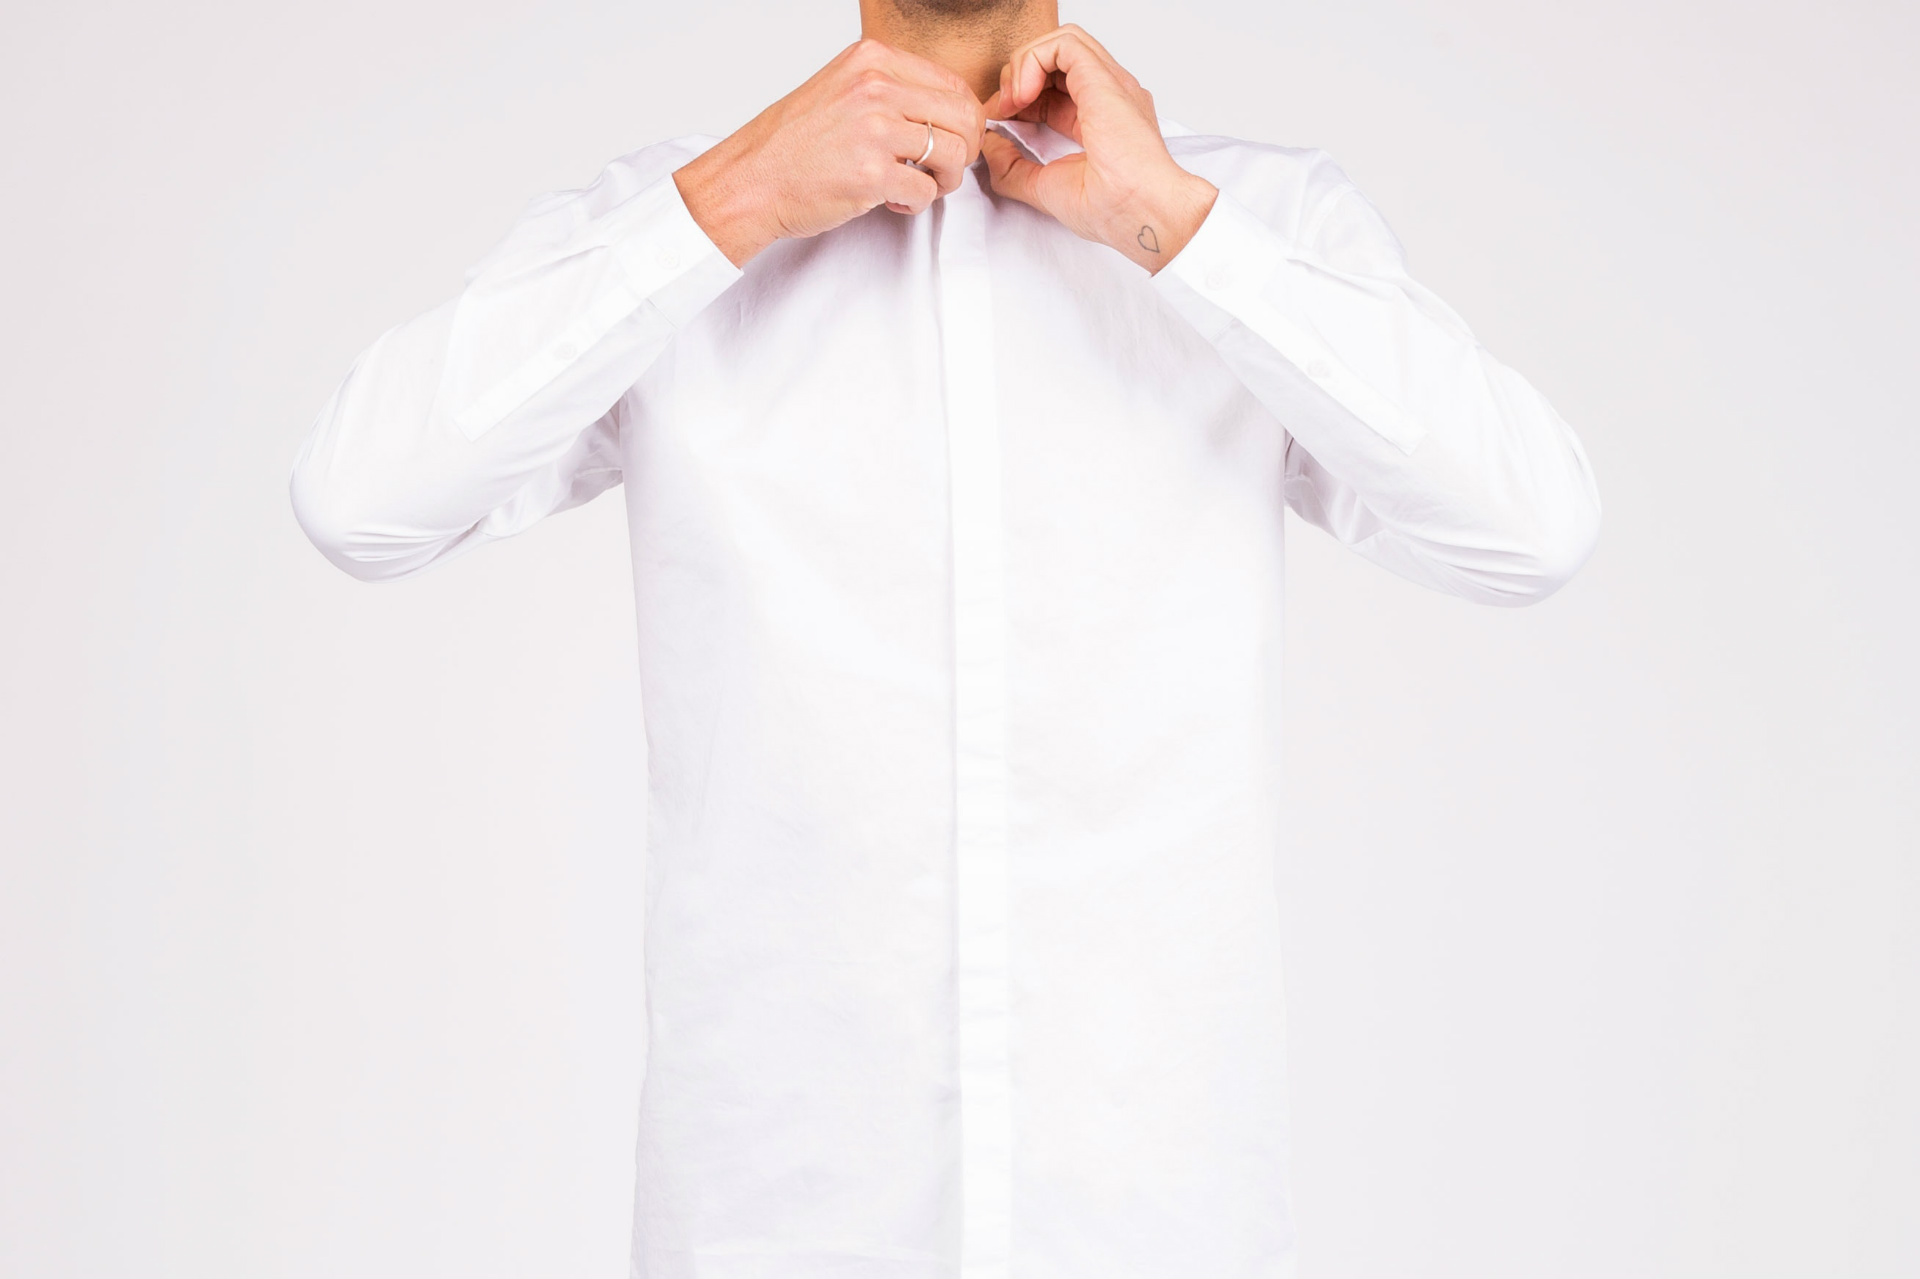 heramo shirt dry cleaning service hcmc